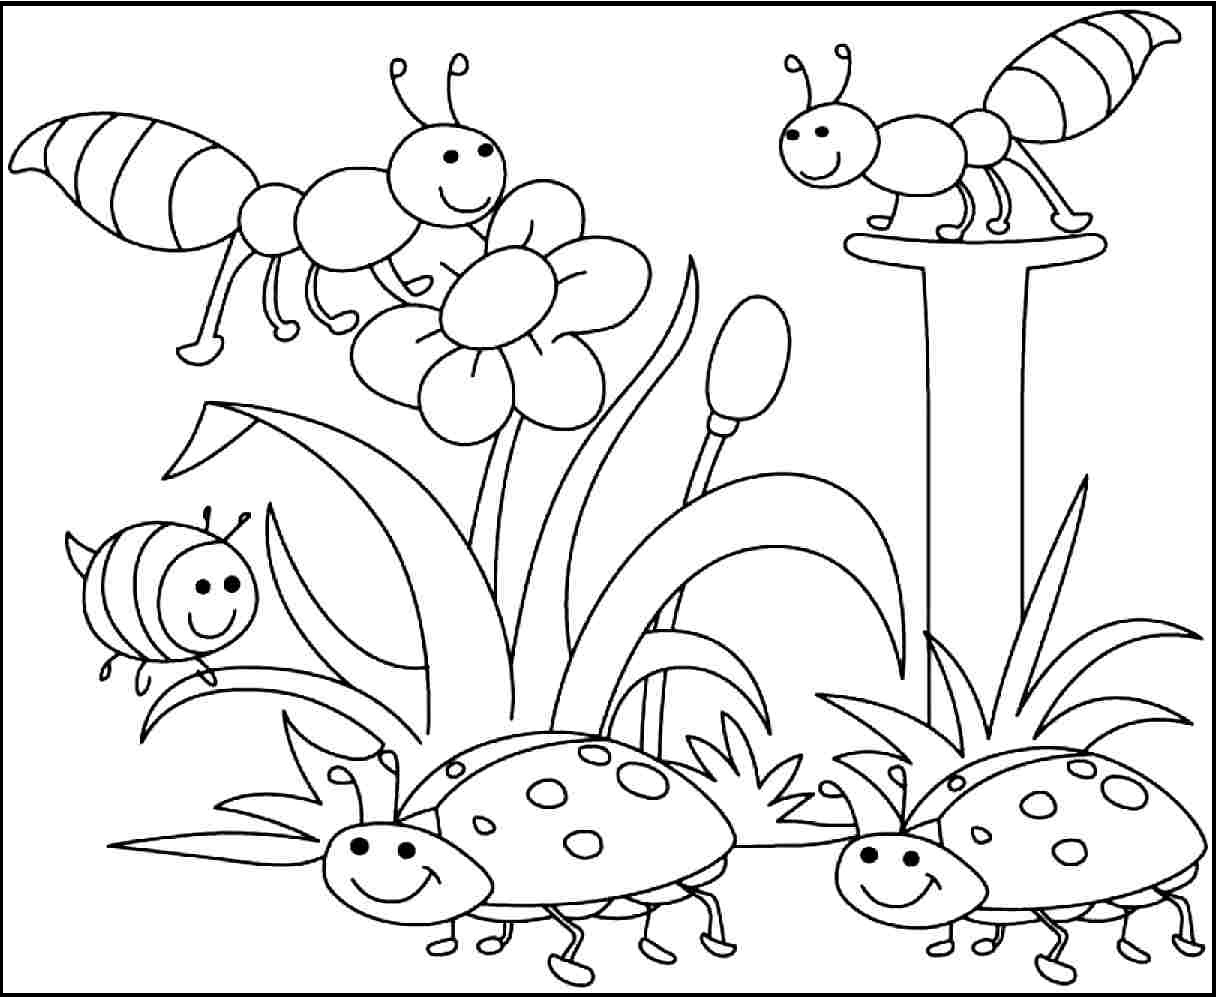 1216x997 Kids Coloring Pages Pdf Colori On Spiderman Coloring Pages Free